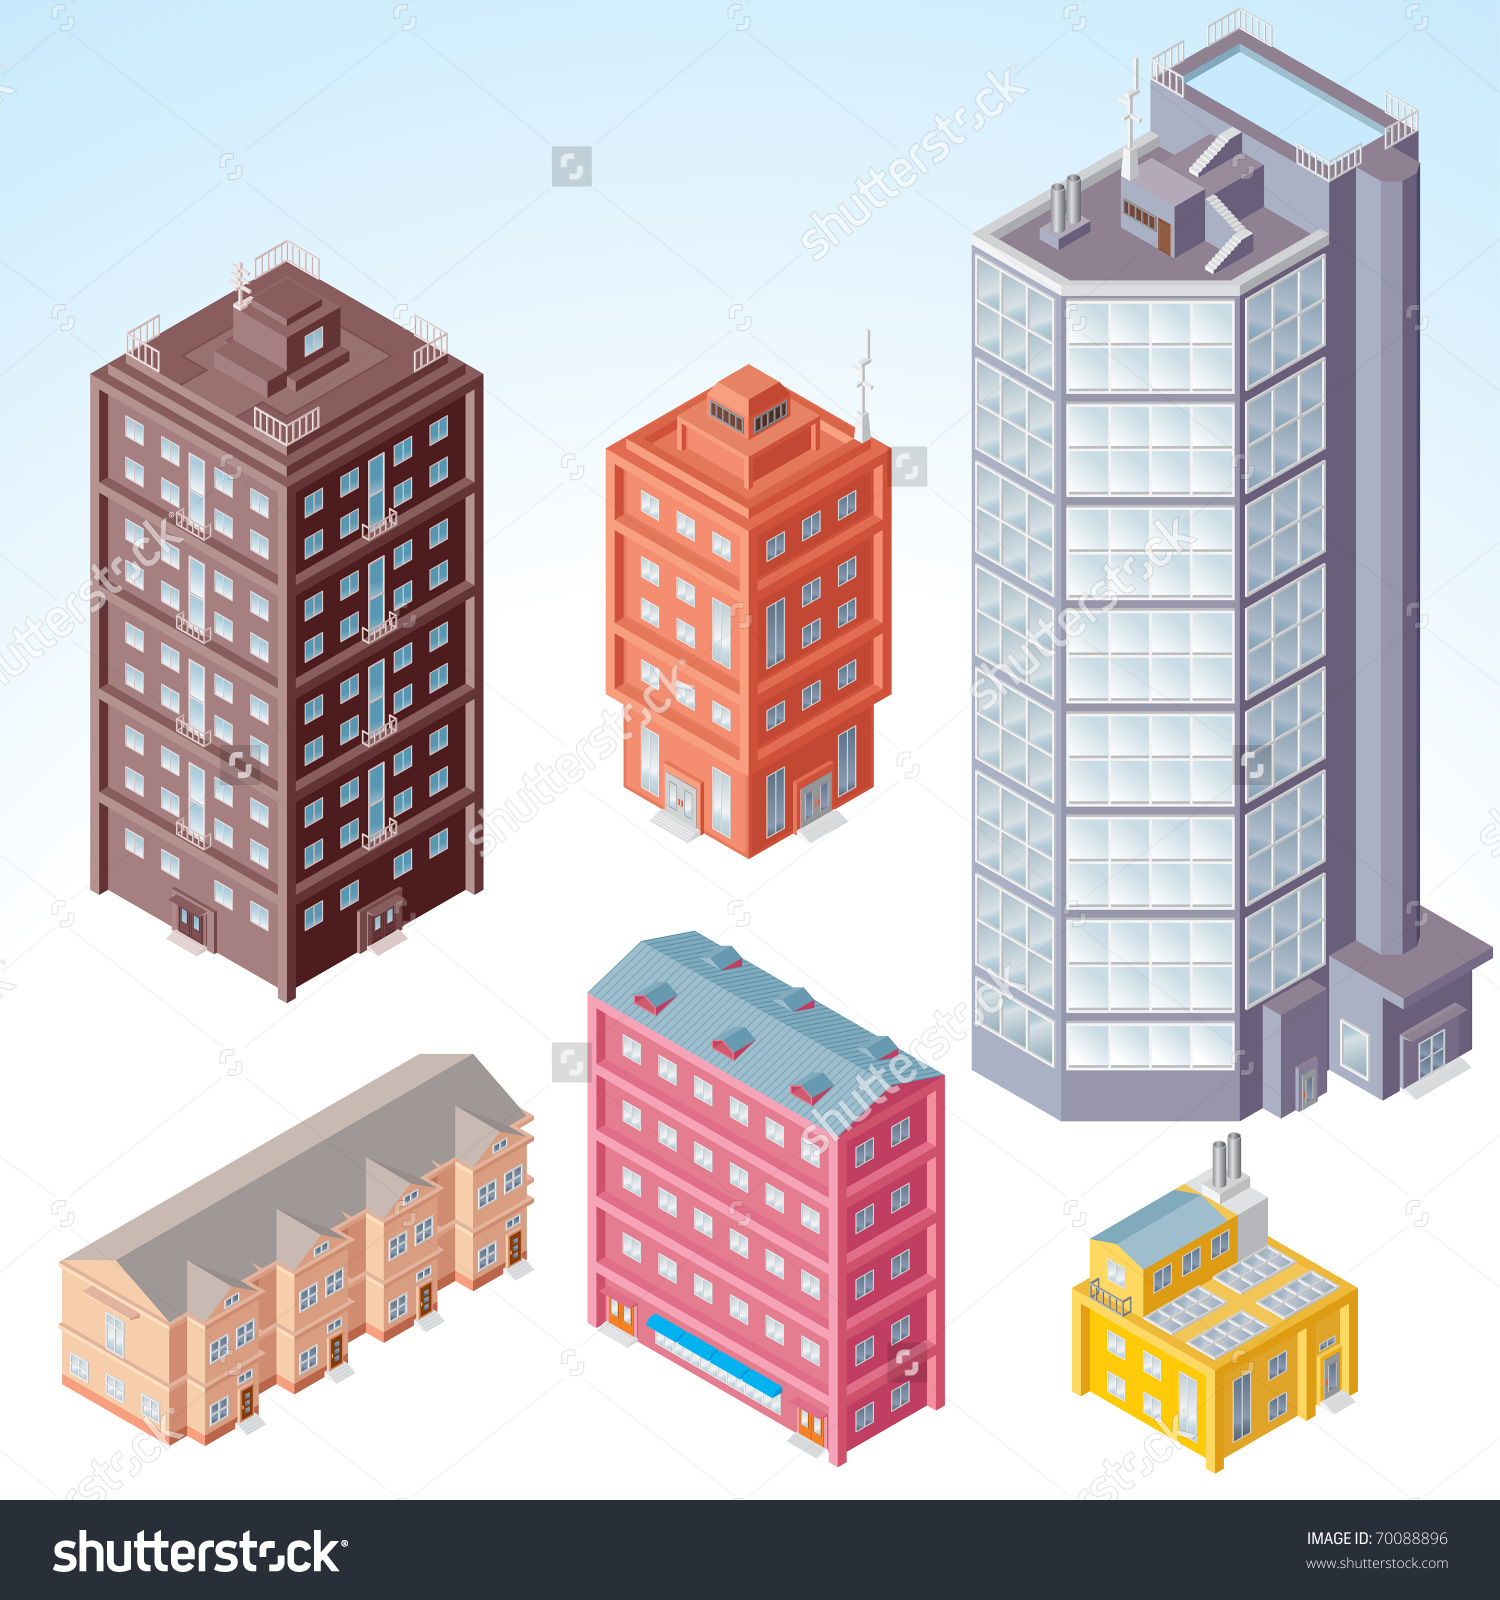 Set Isolated Modern City Buildings Isometric Stock Vector 70088896.